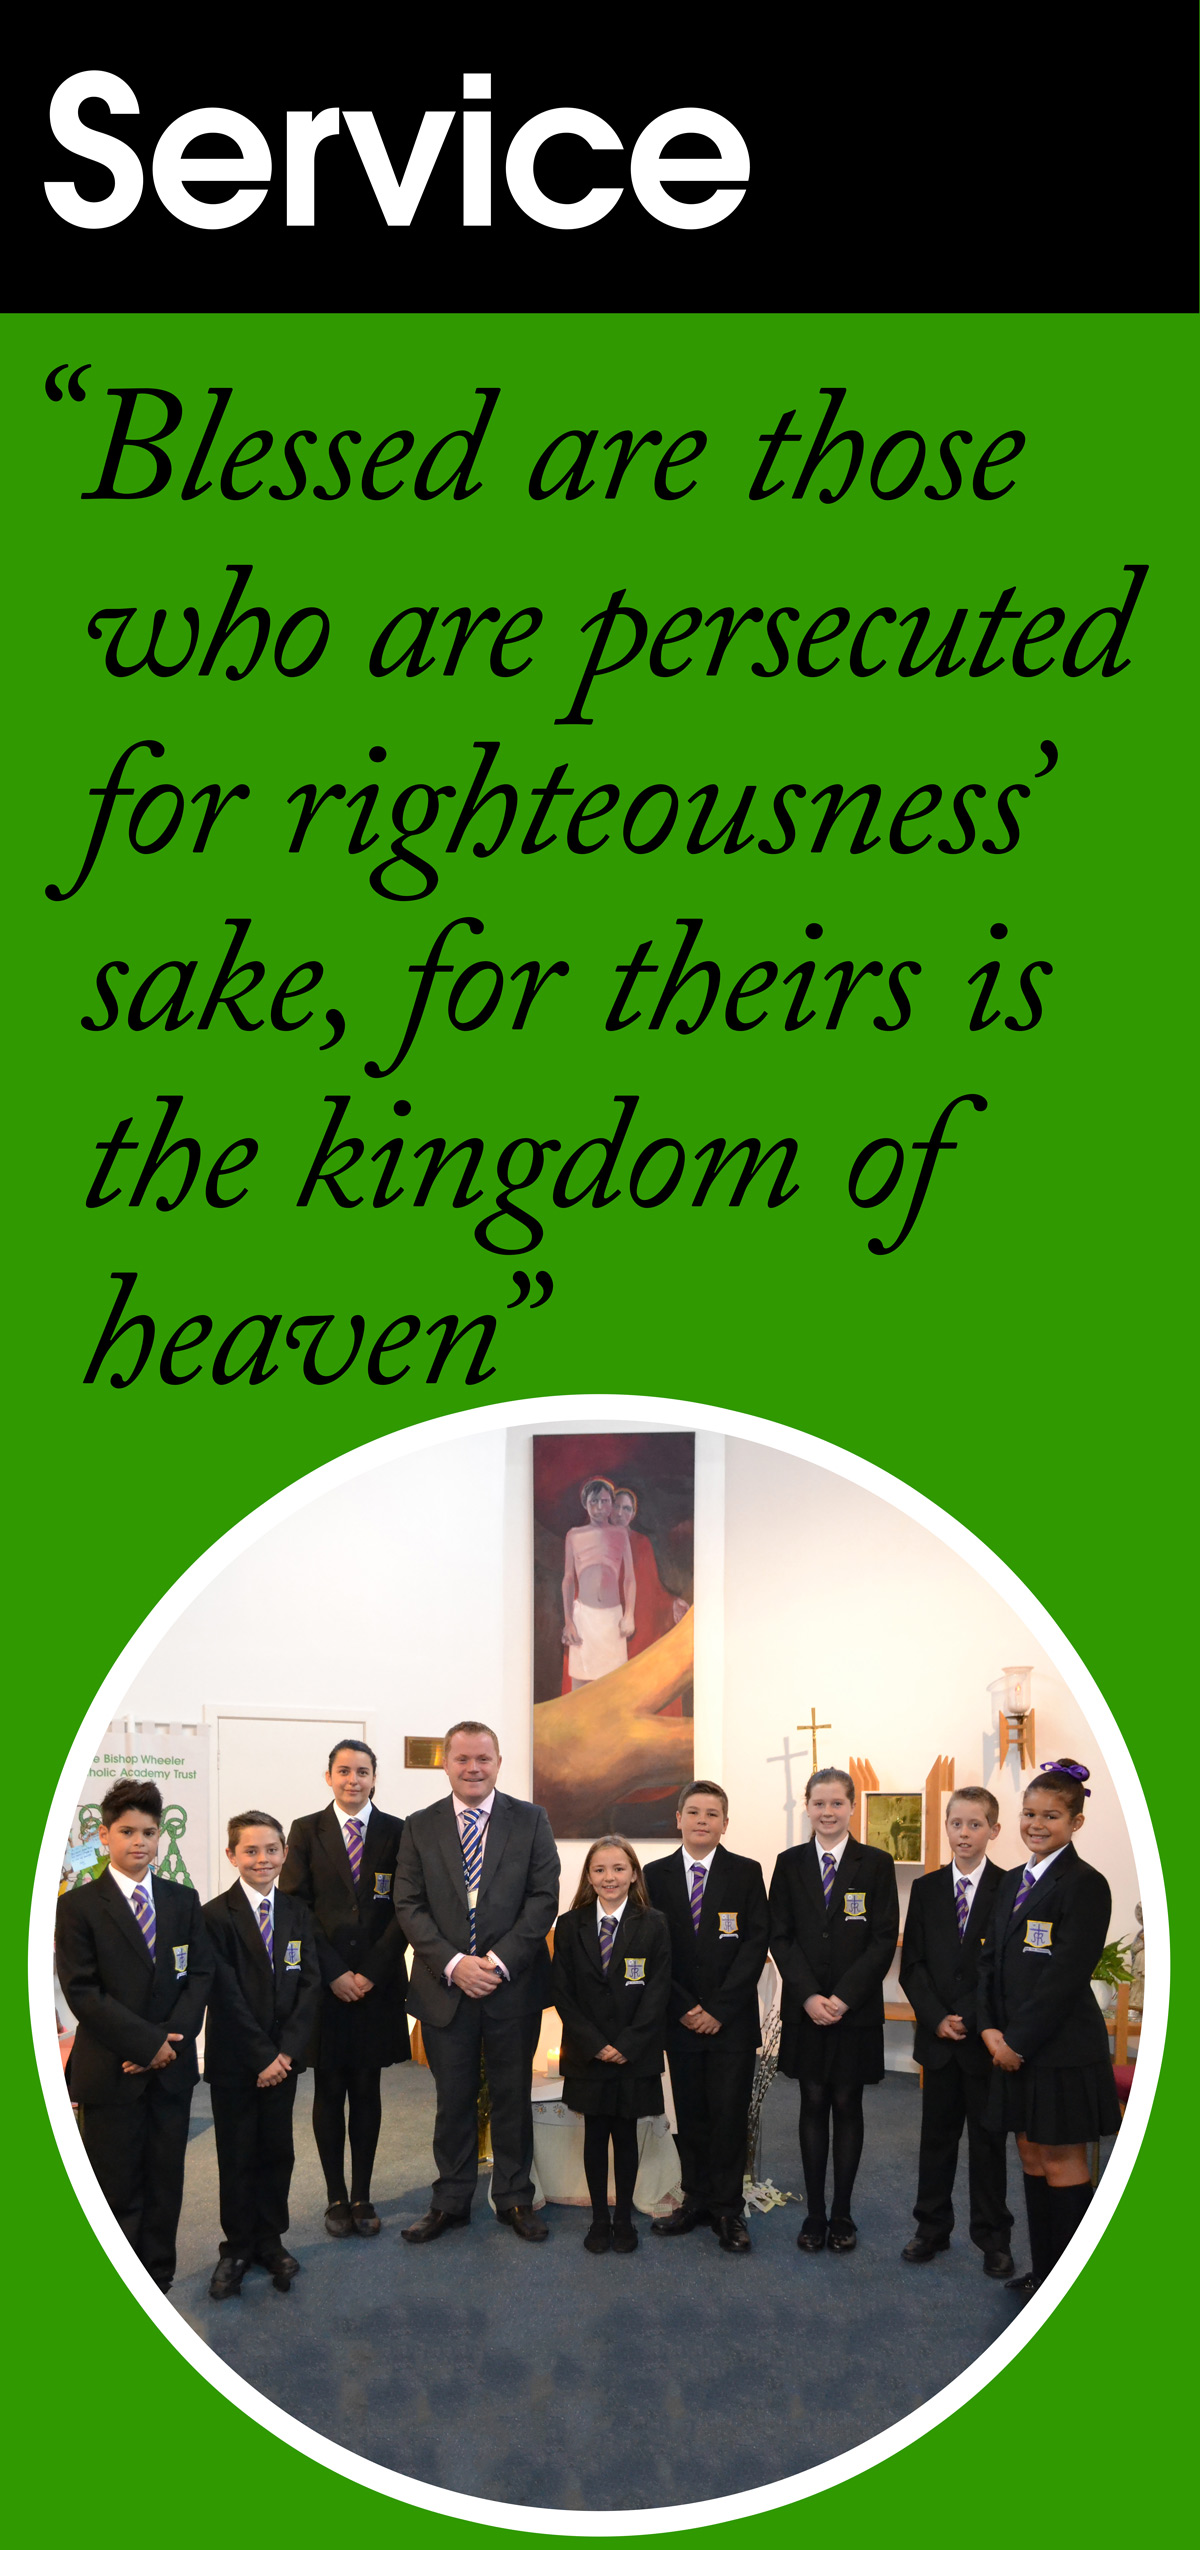 """Service: """"Blessed are those who are persecuted for righteousness' sake, for theirs is the kingdom of heaven"""""""